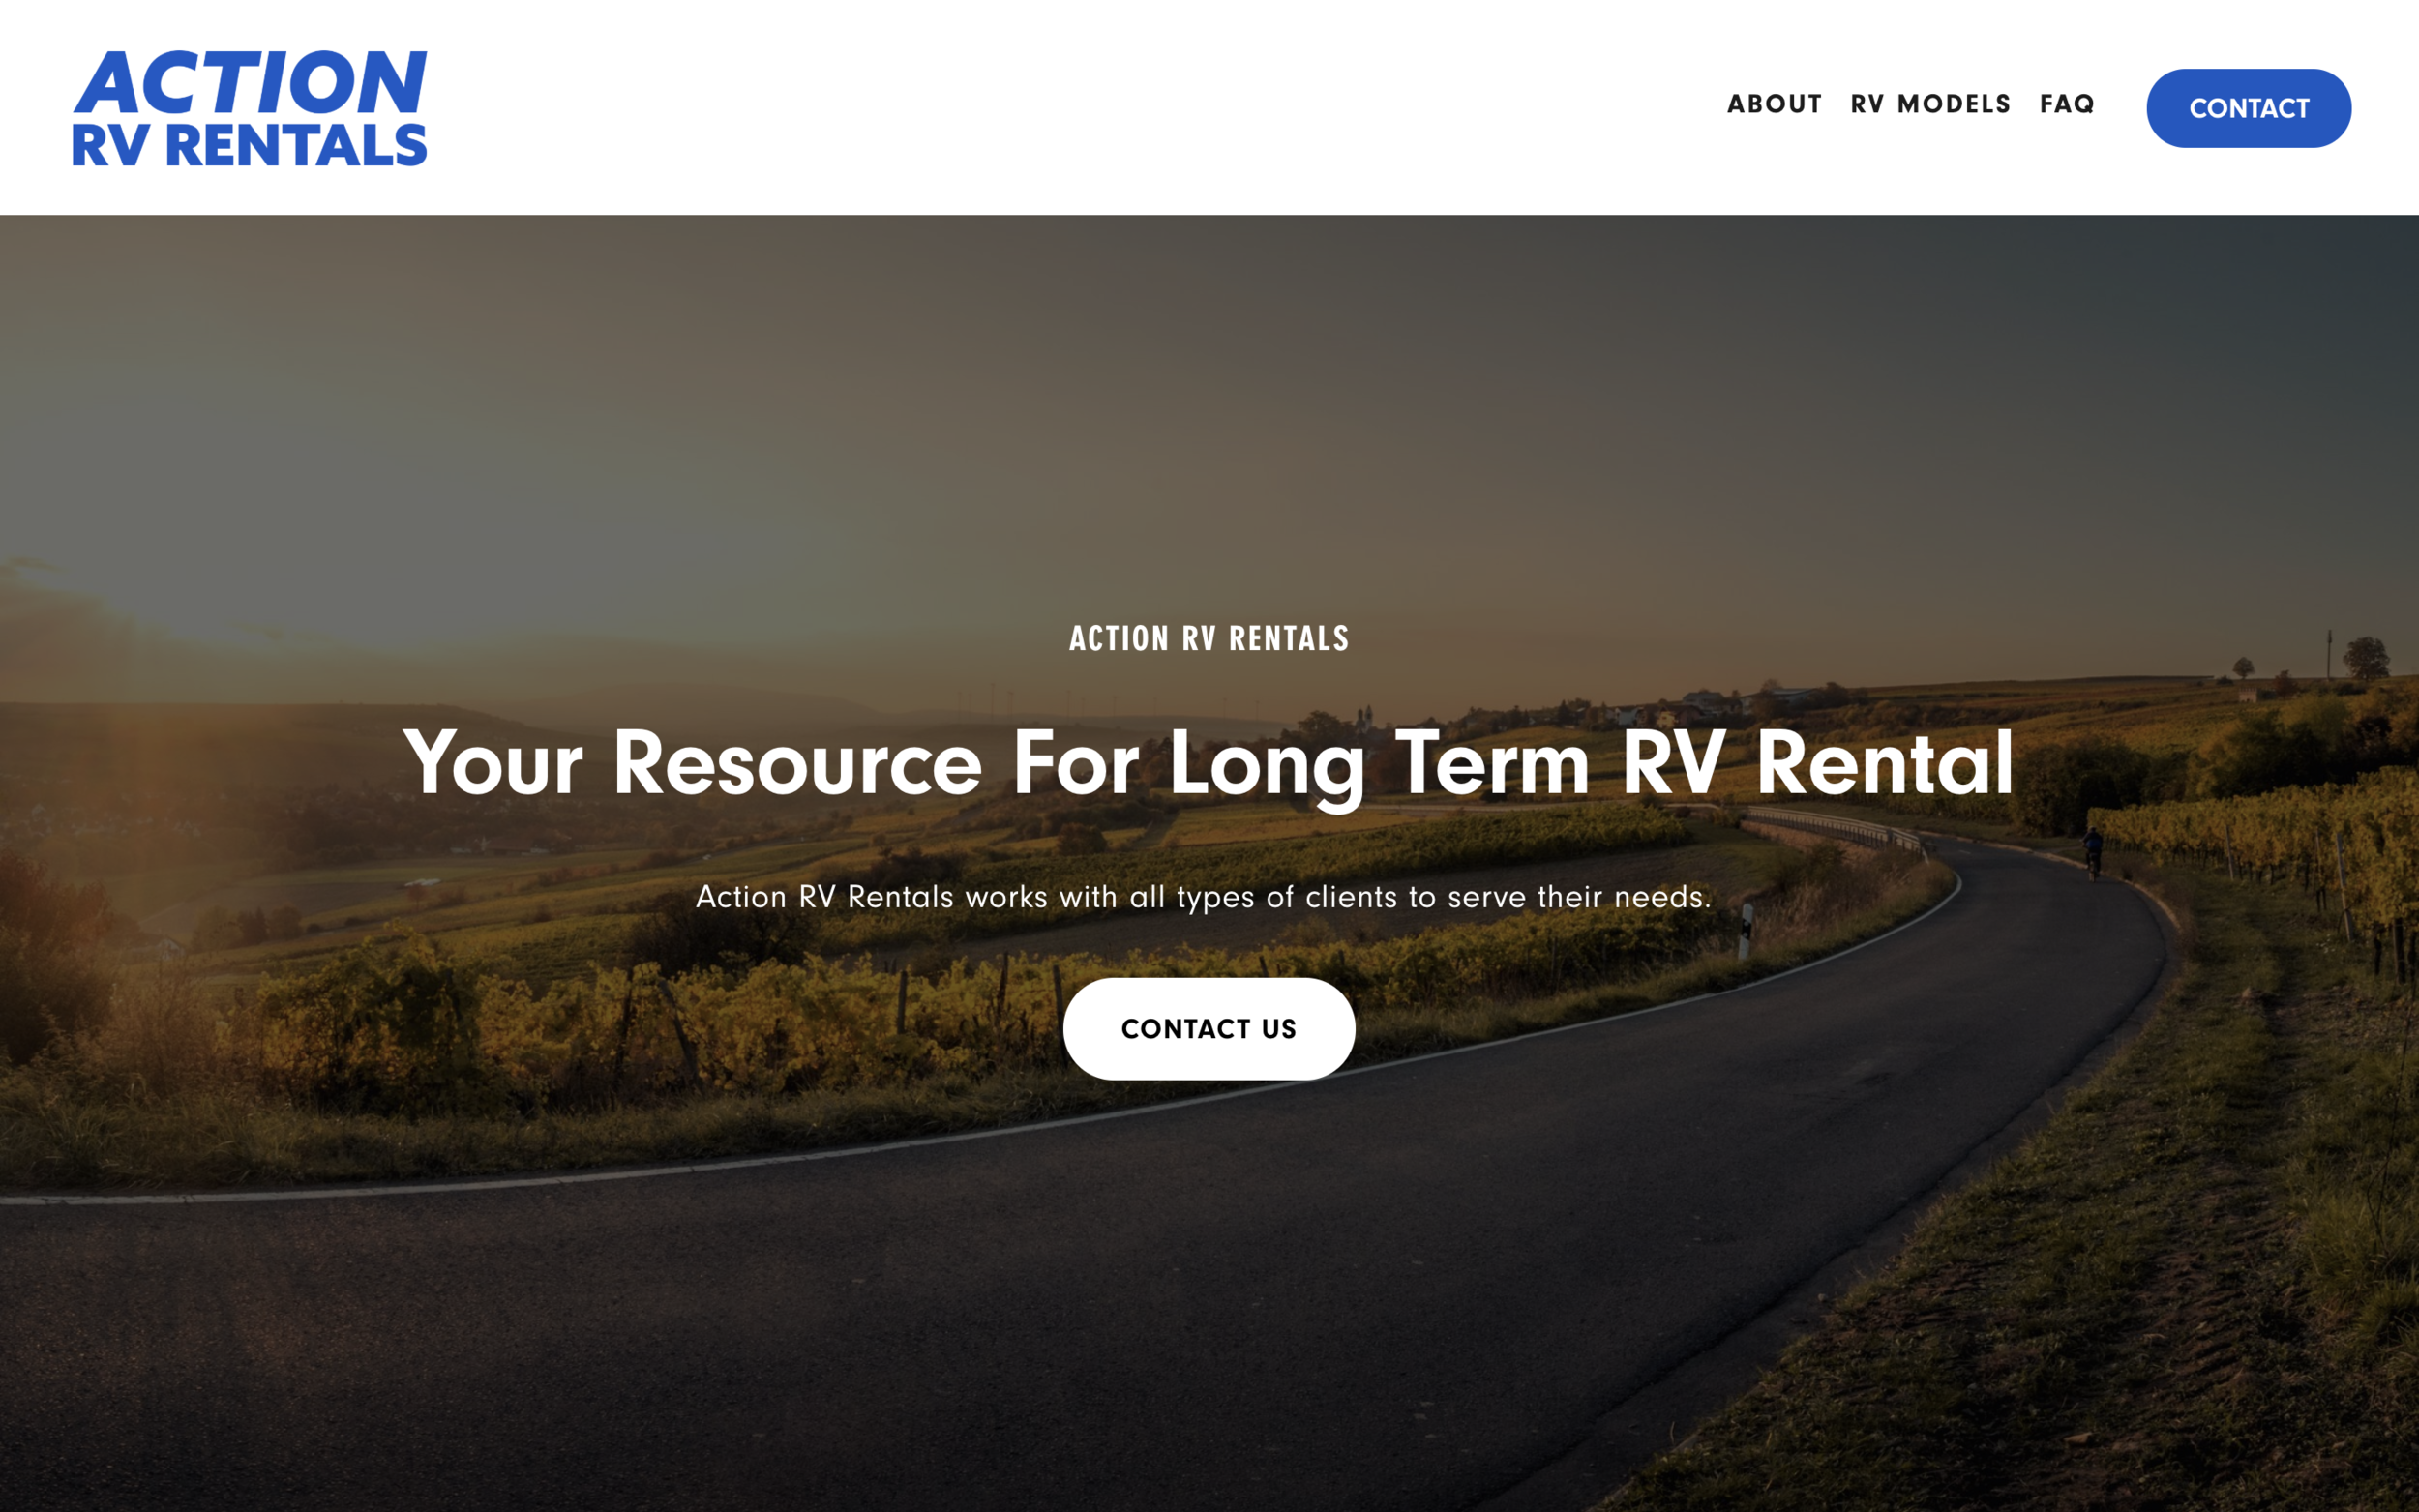 actionrvrental.com - Rental Service Squarespace WebsiteAction RV Rental is providing a specific solution for people in need and we provided this beautiful and responsive Squarespace website for them to build their brand.